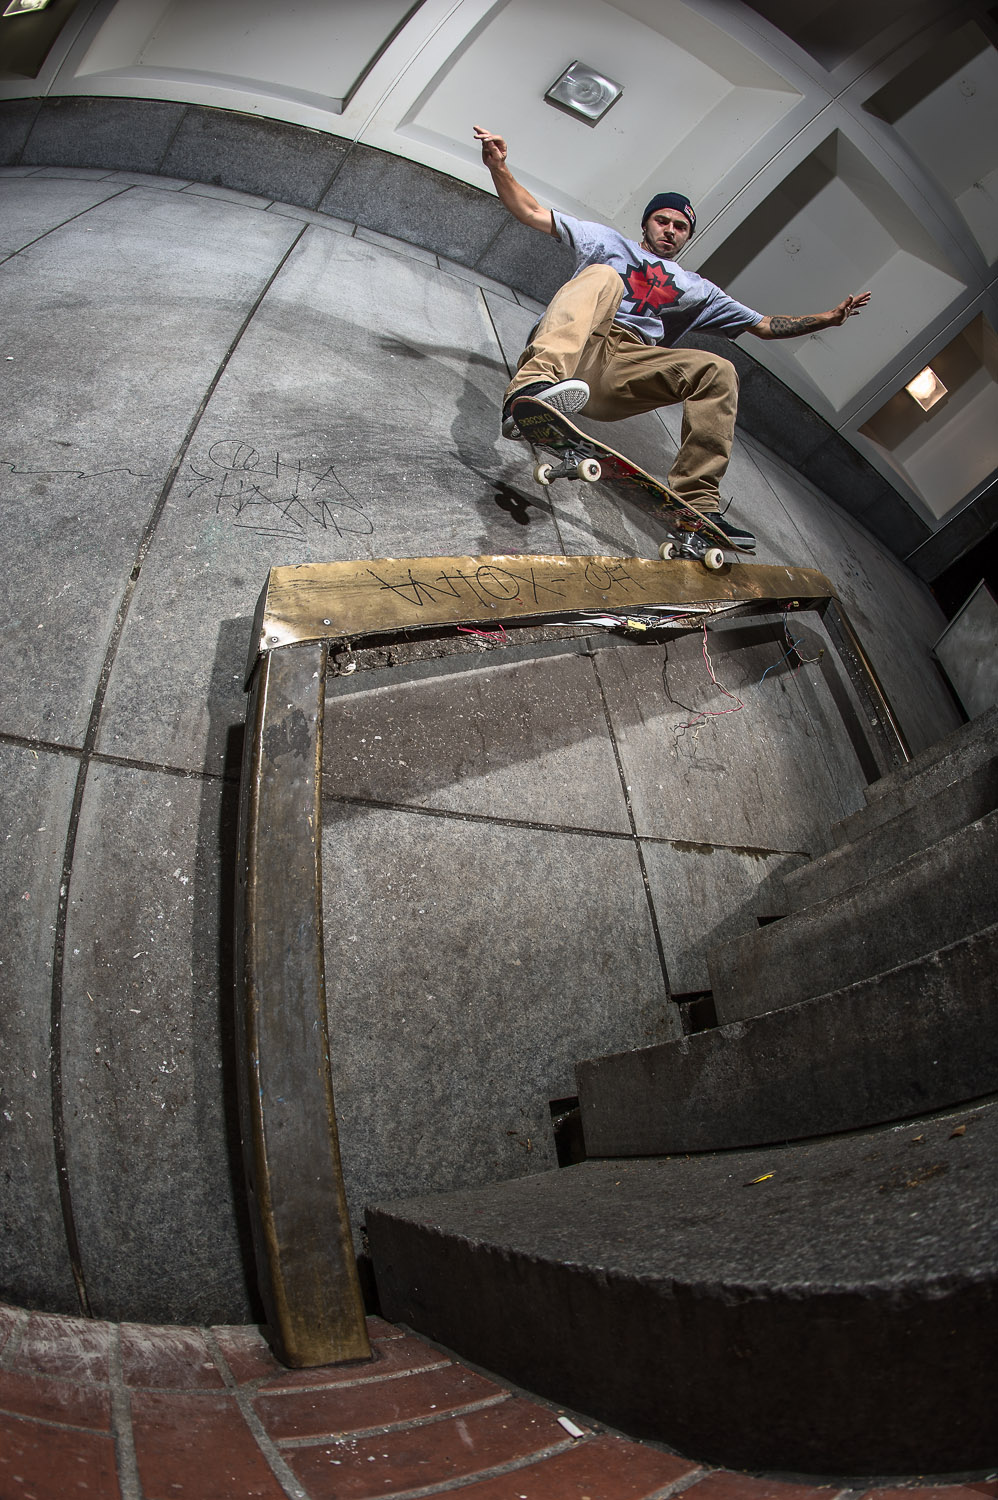 TJ_Rogers_SwitchBackside5-0.jpg